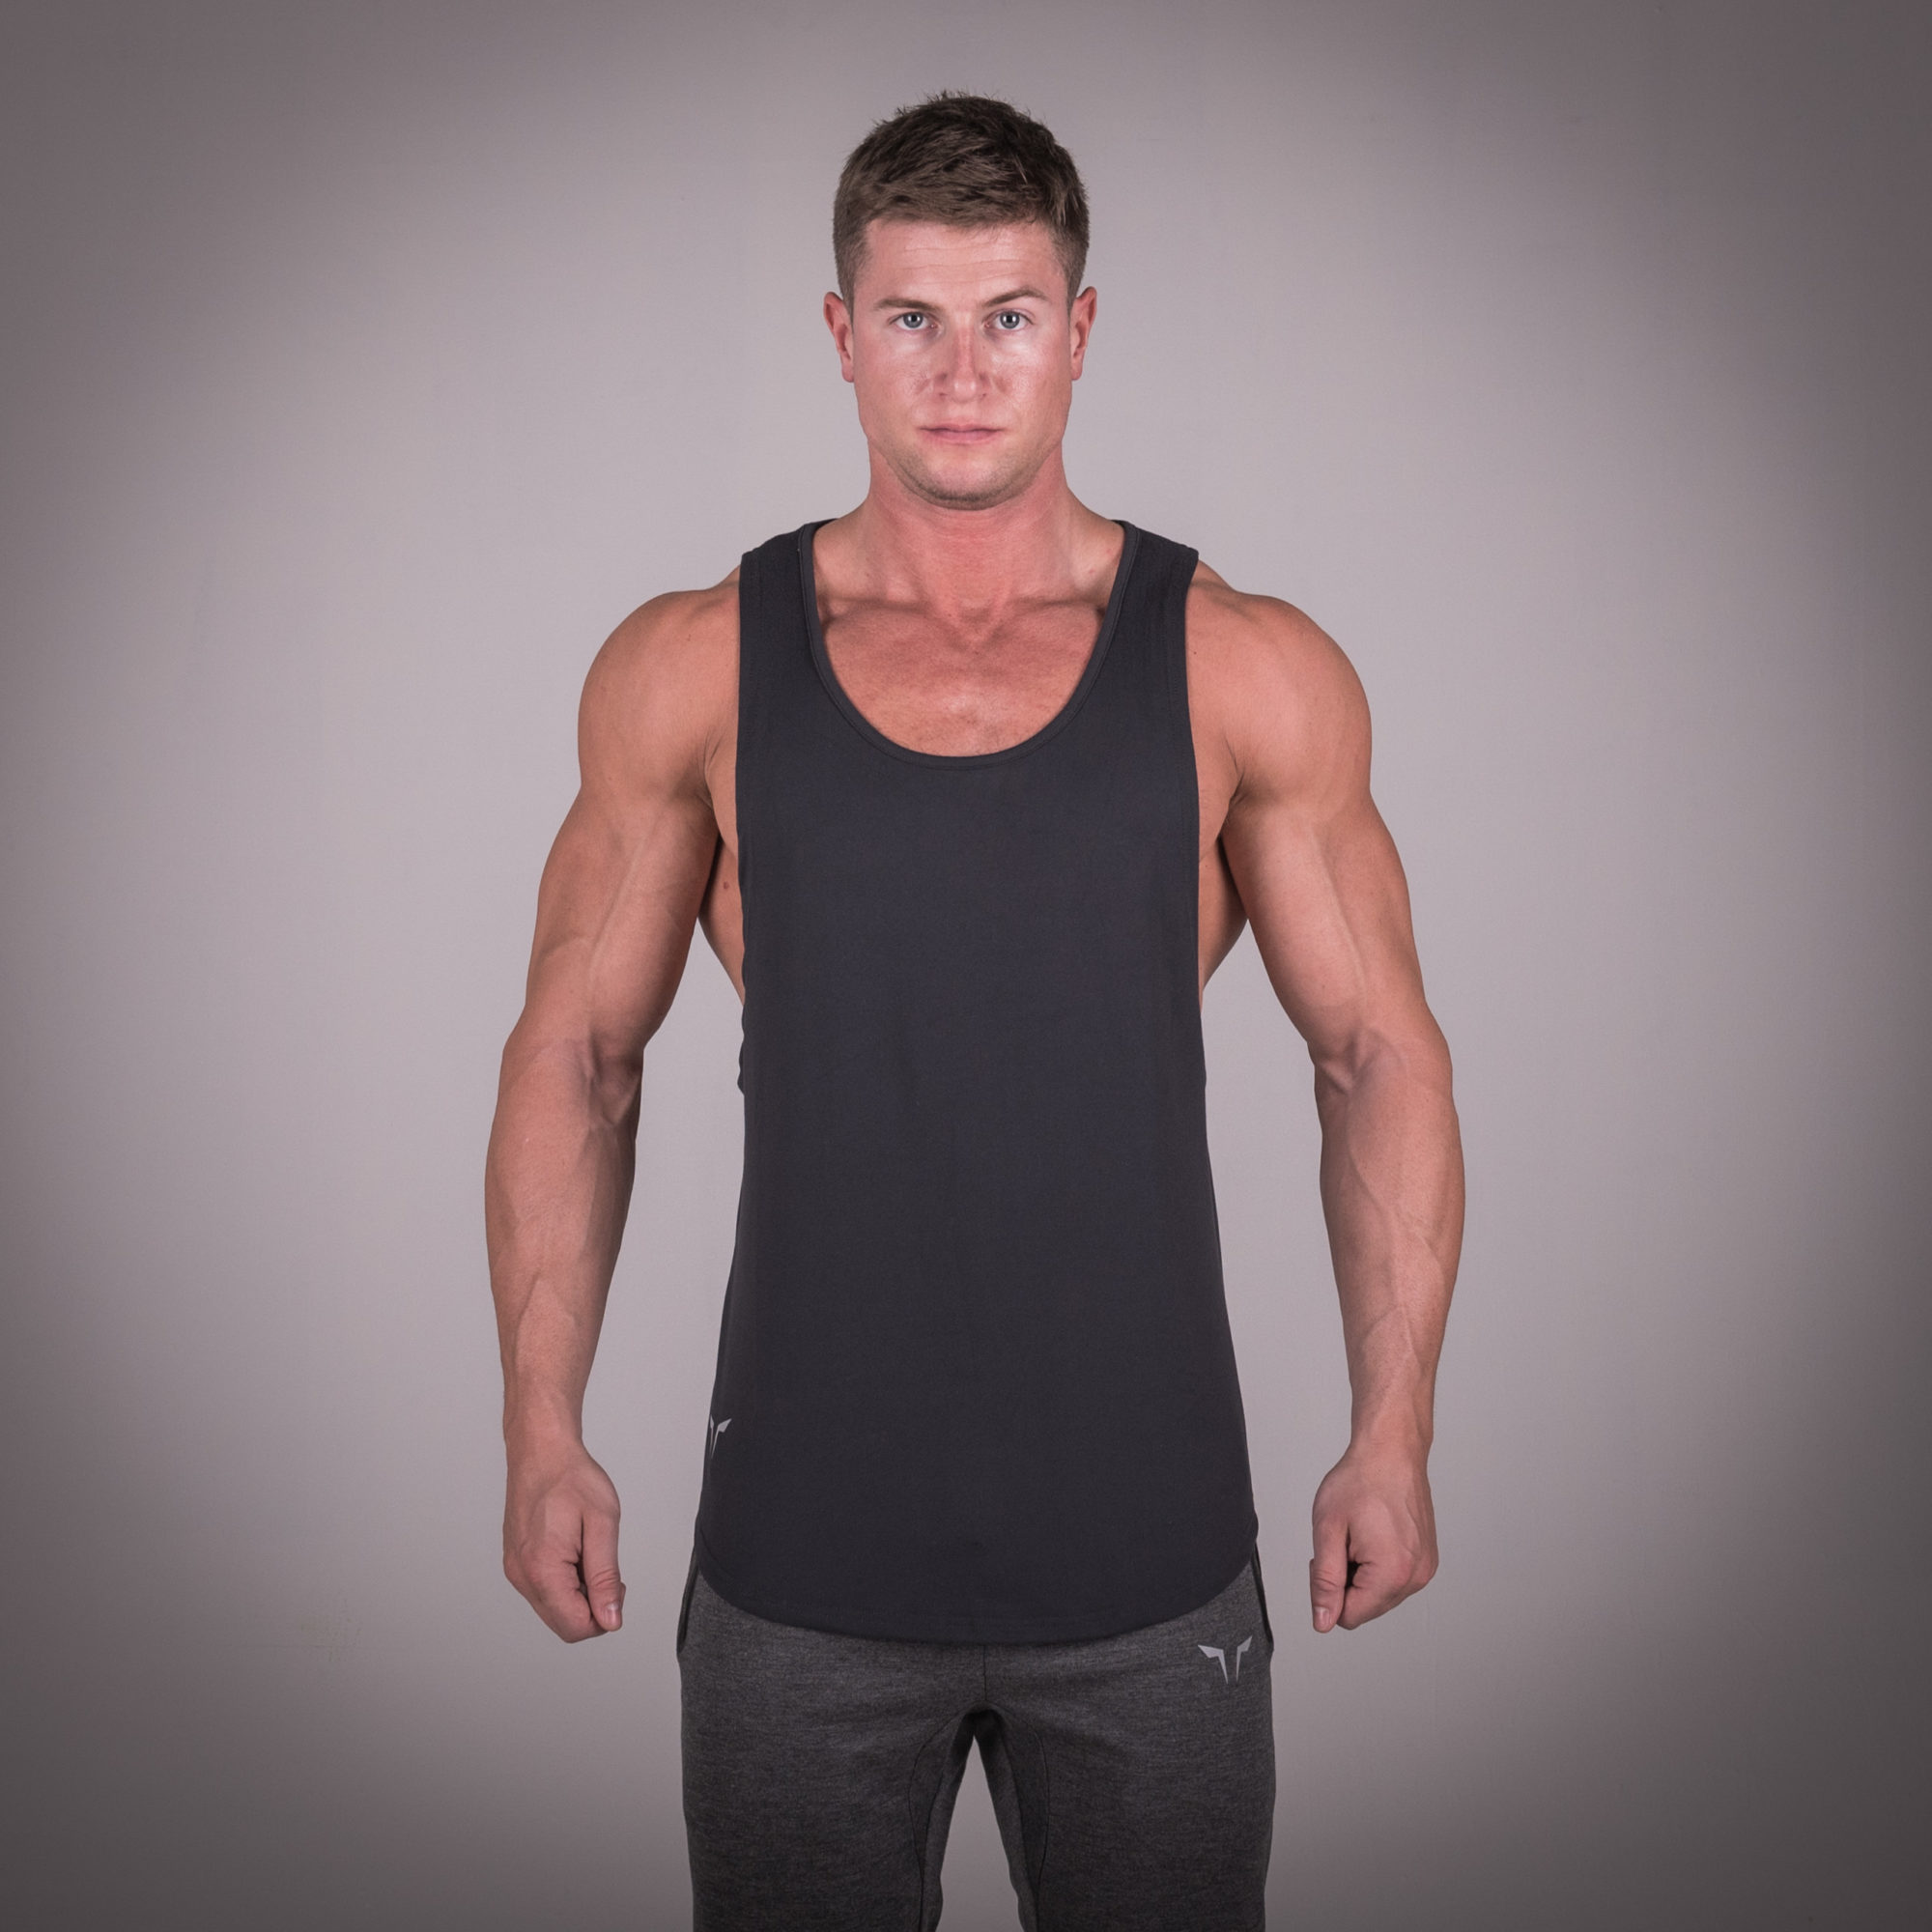 4e8d3b1c851c0e Train Insane with Muscle Stringer - Black by Squat Wolf